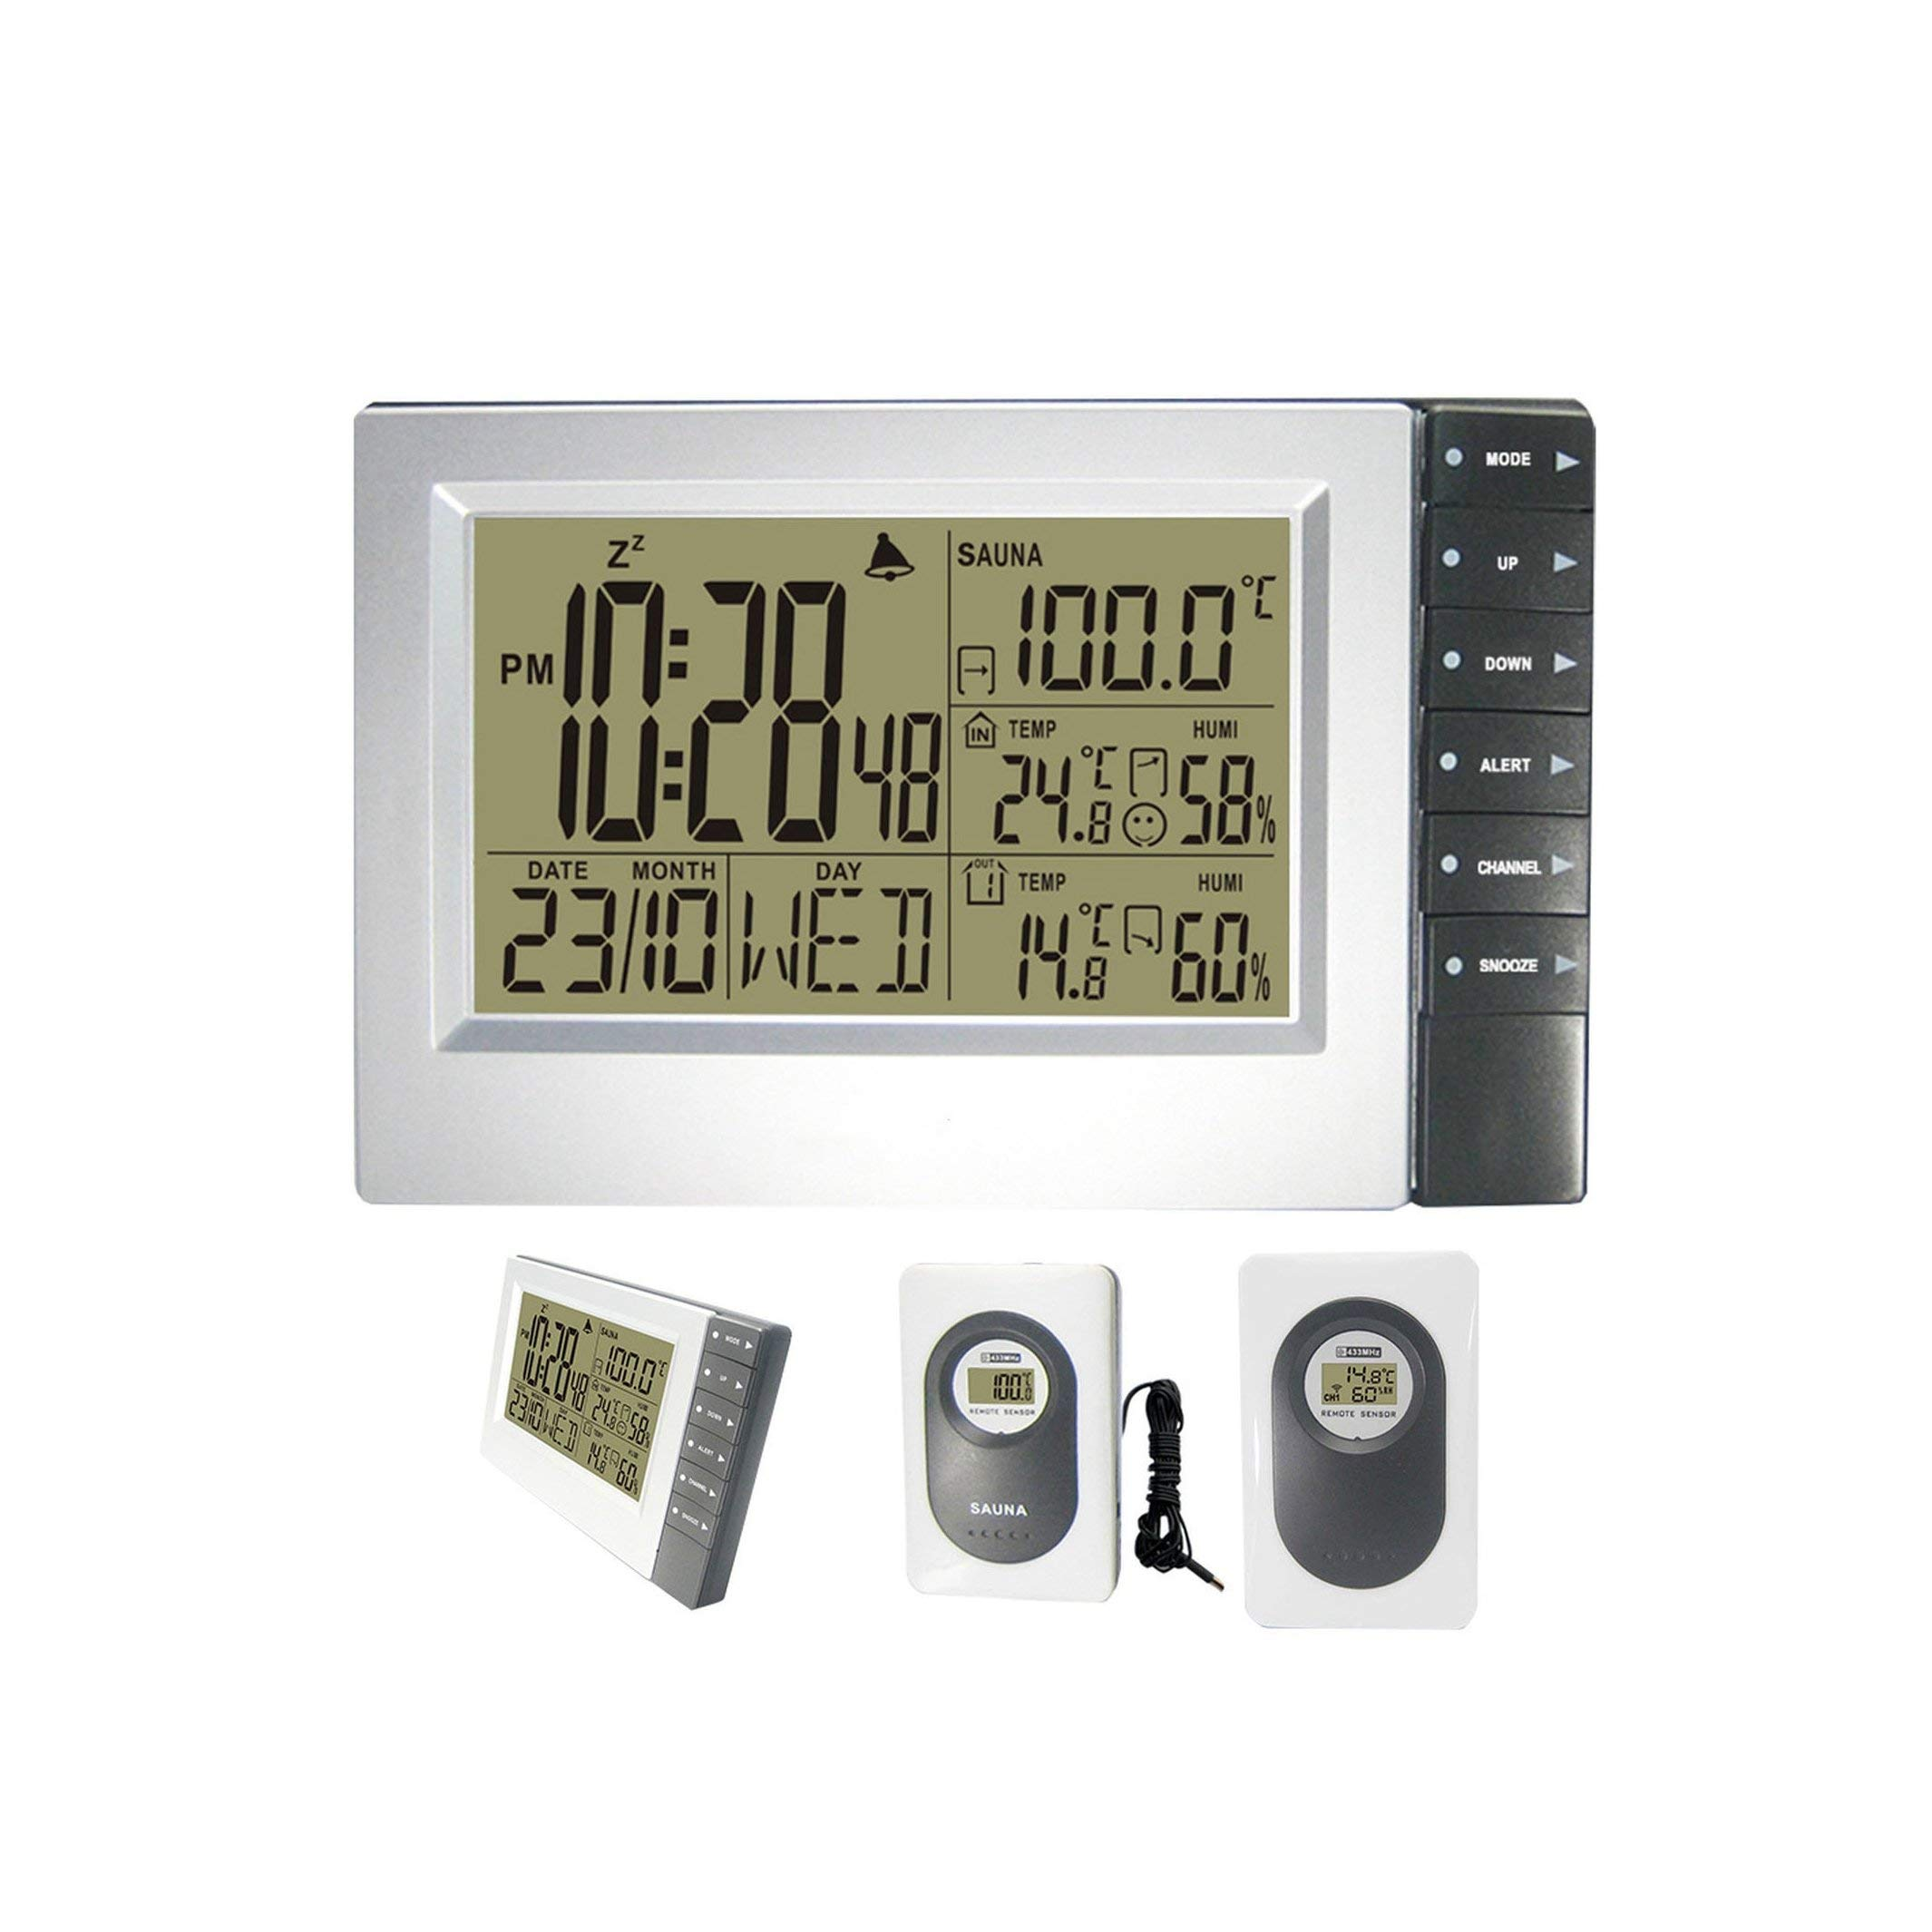 Digital Wireless Weather Station with Indoor Outdoor Thermometer Hygrometer Digital Sauna Temperature Alarm Clock 4 Transmitters,Two Transmitters